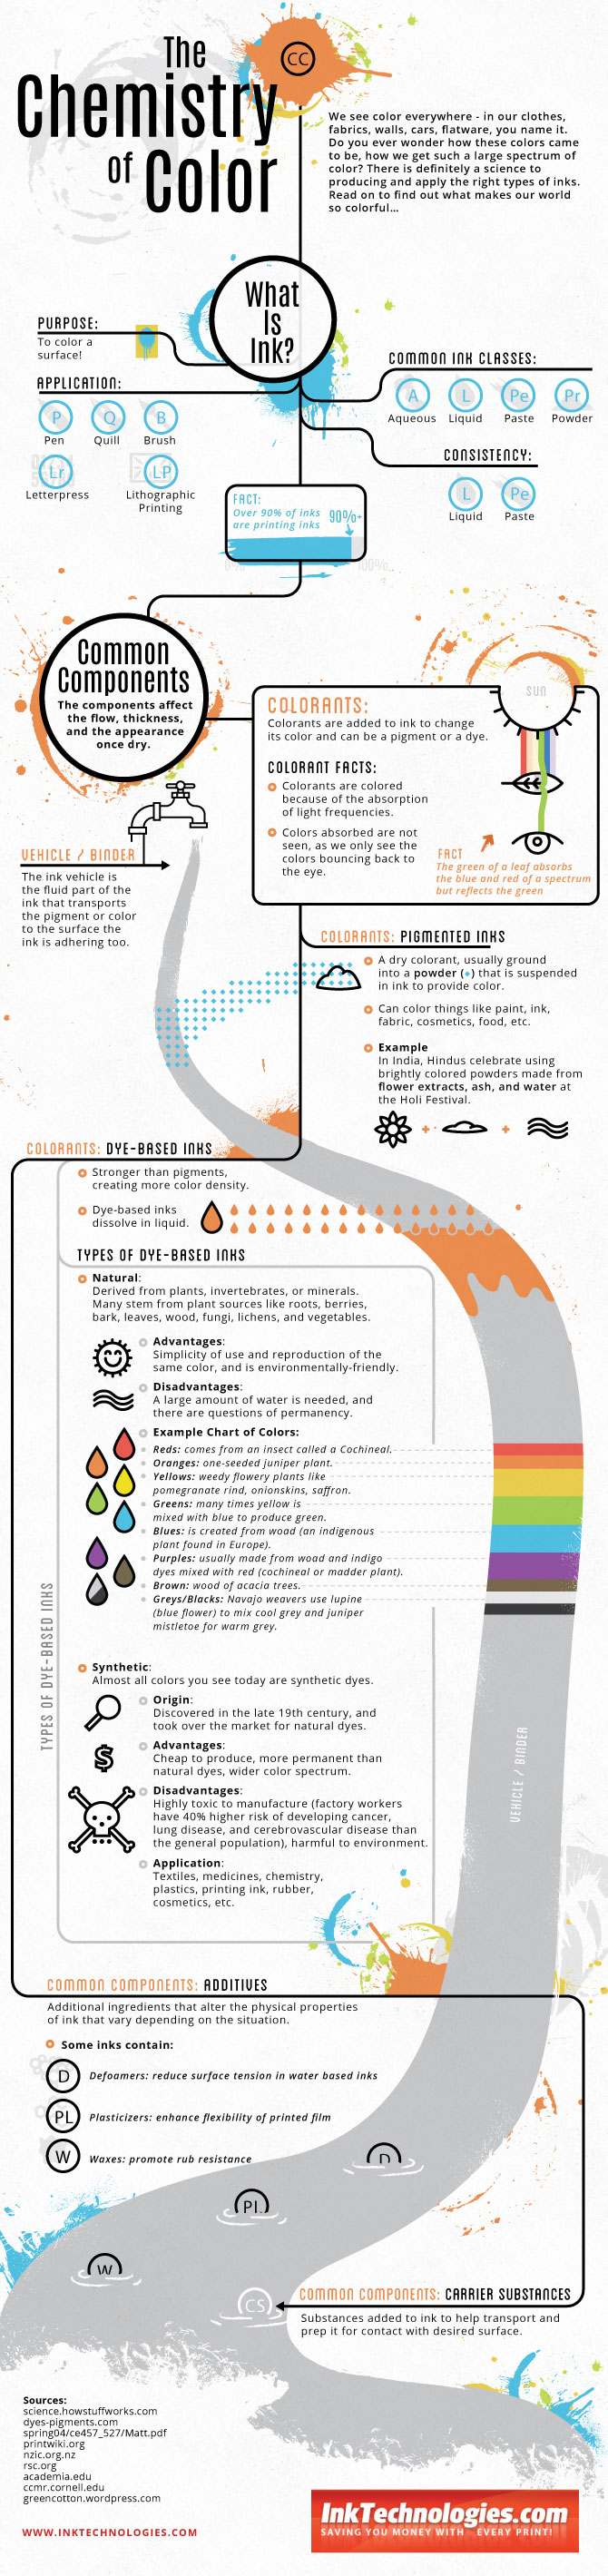 Chemistry of Color